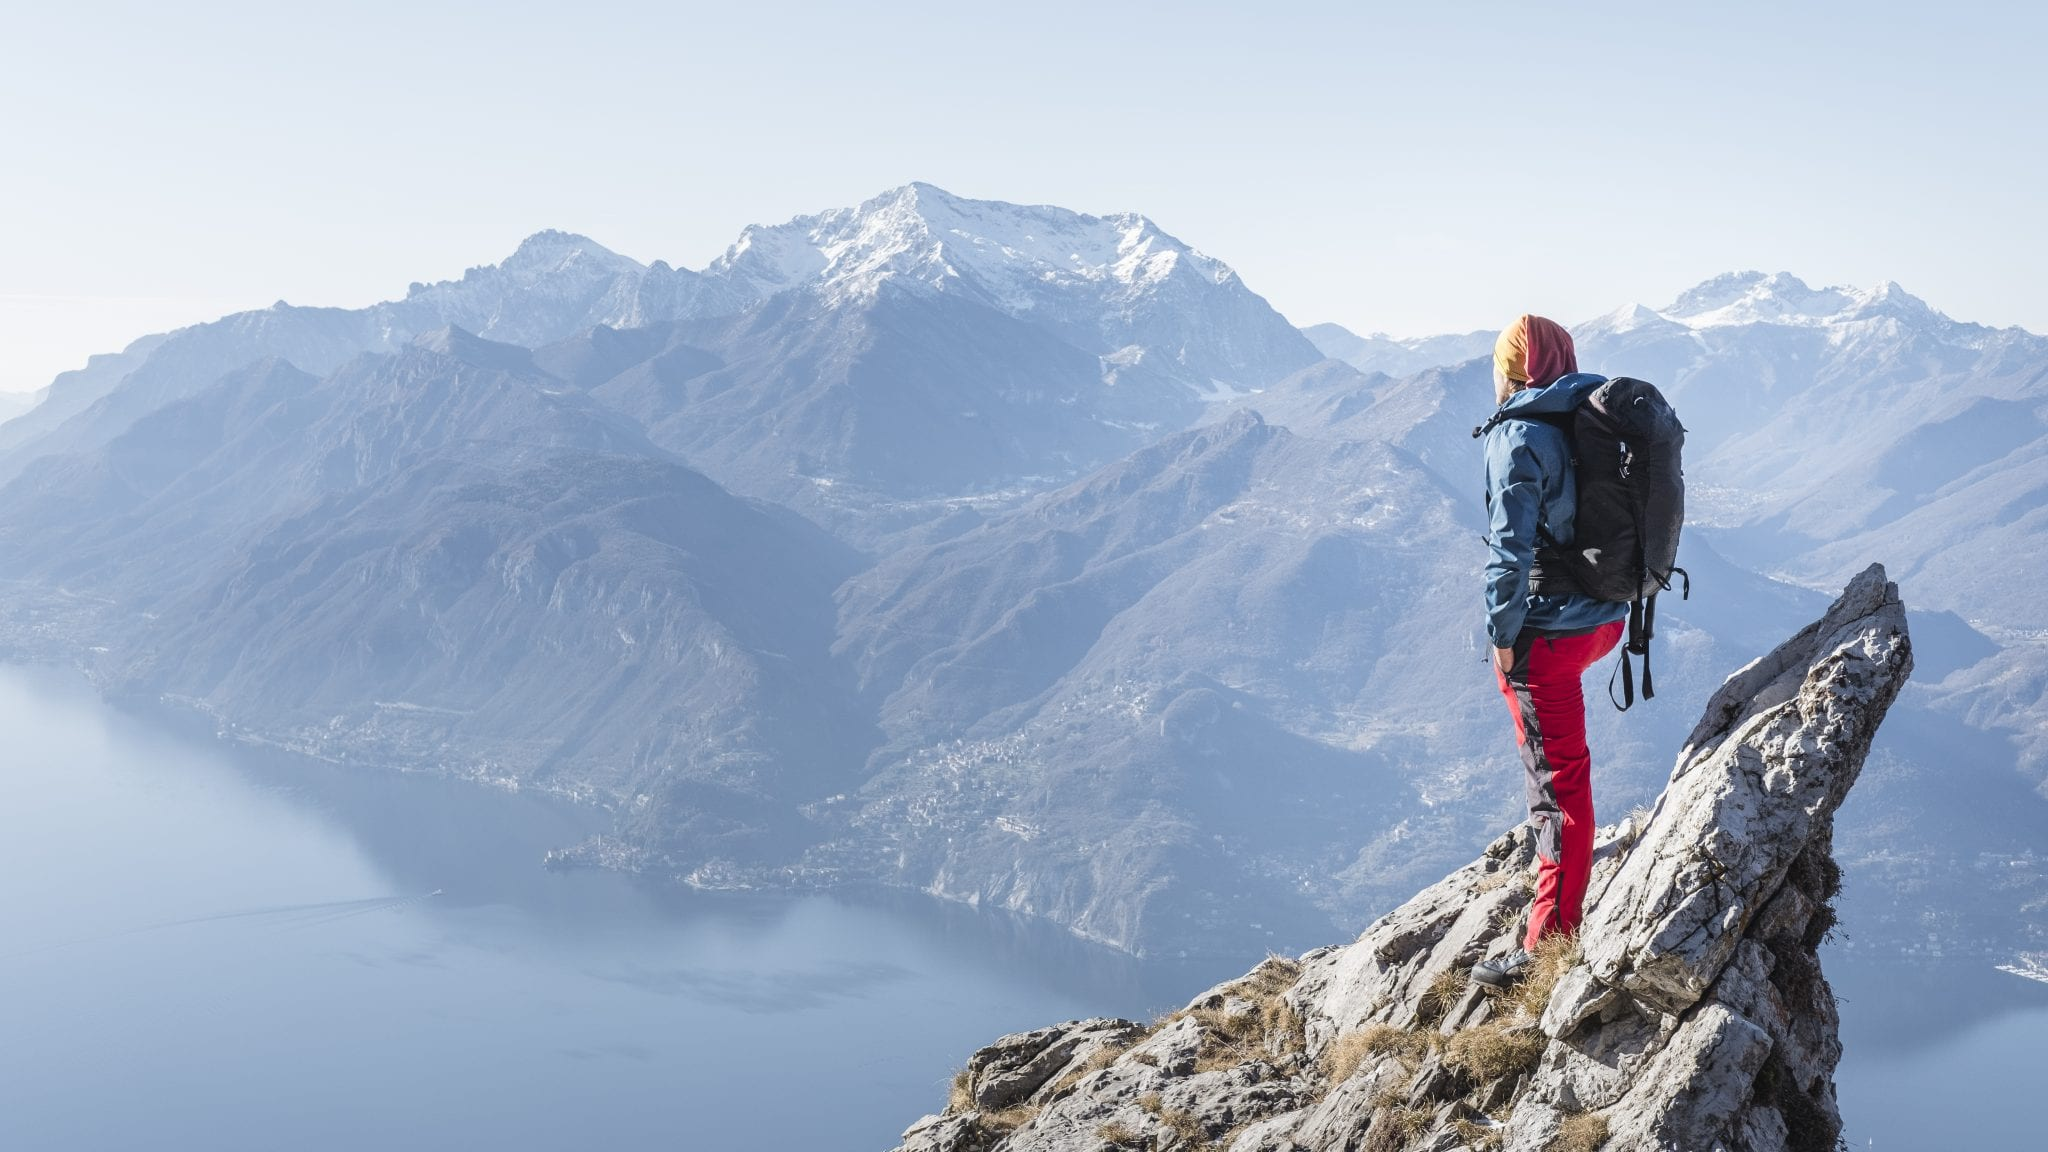 Heidi Zimmer standing at the top of a tall mountain looking out over an expanse of sea and rocky mountains.